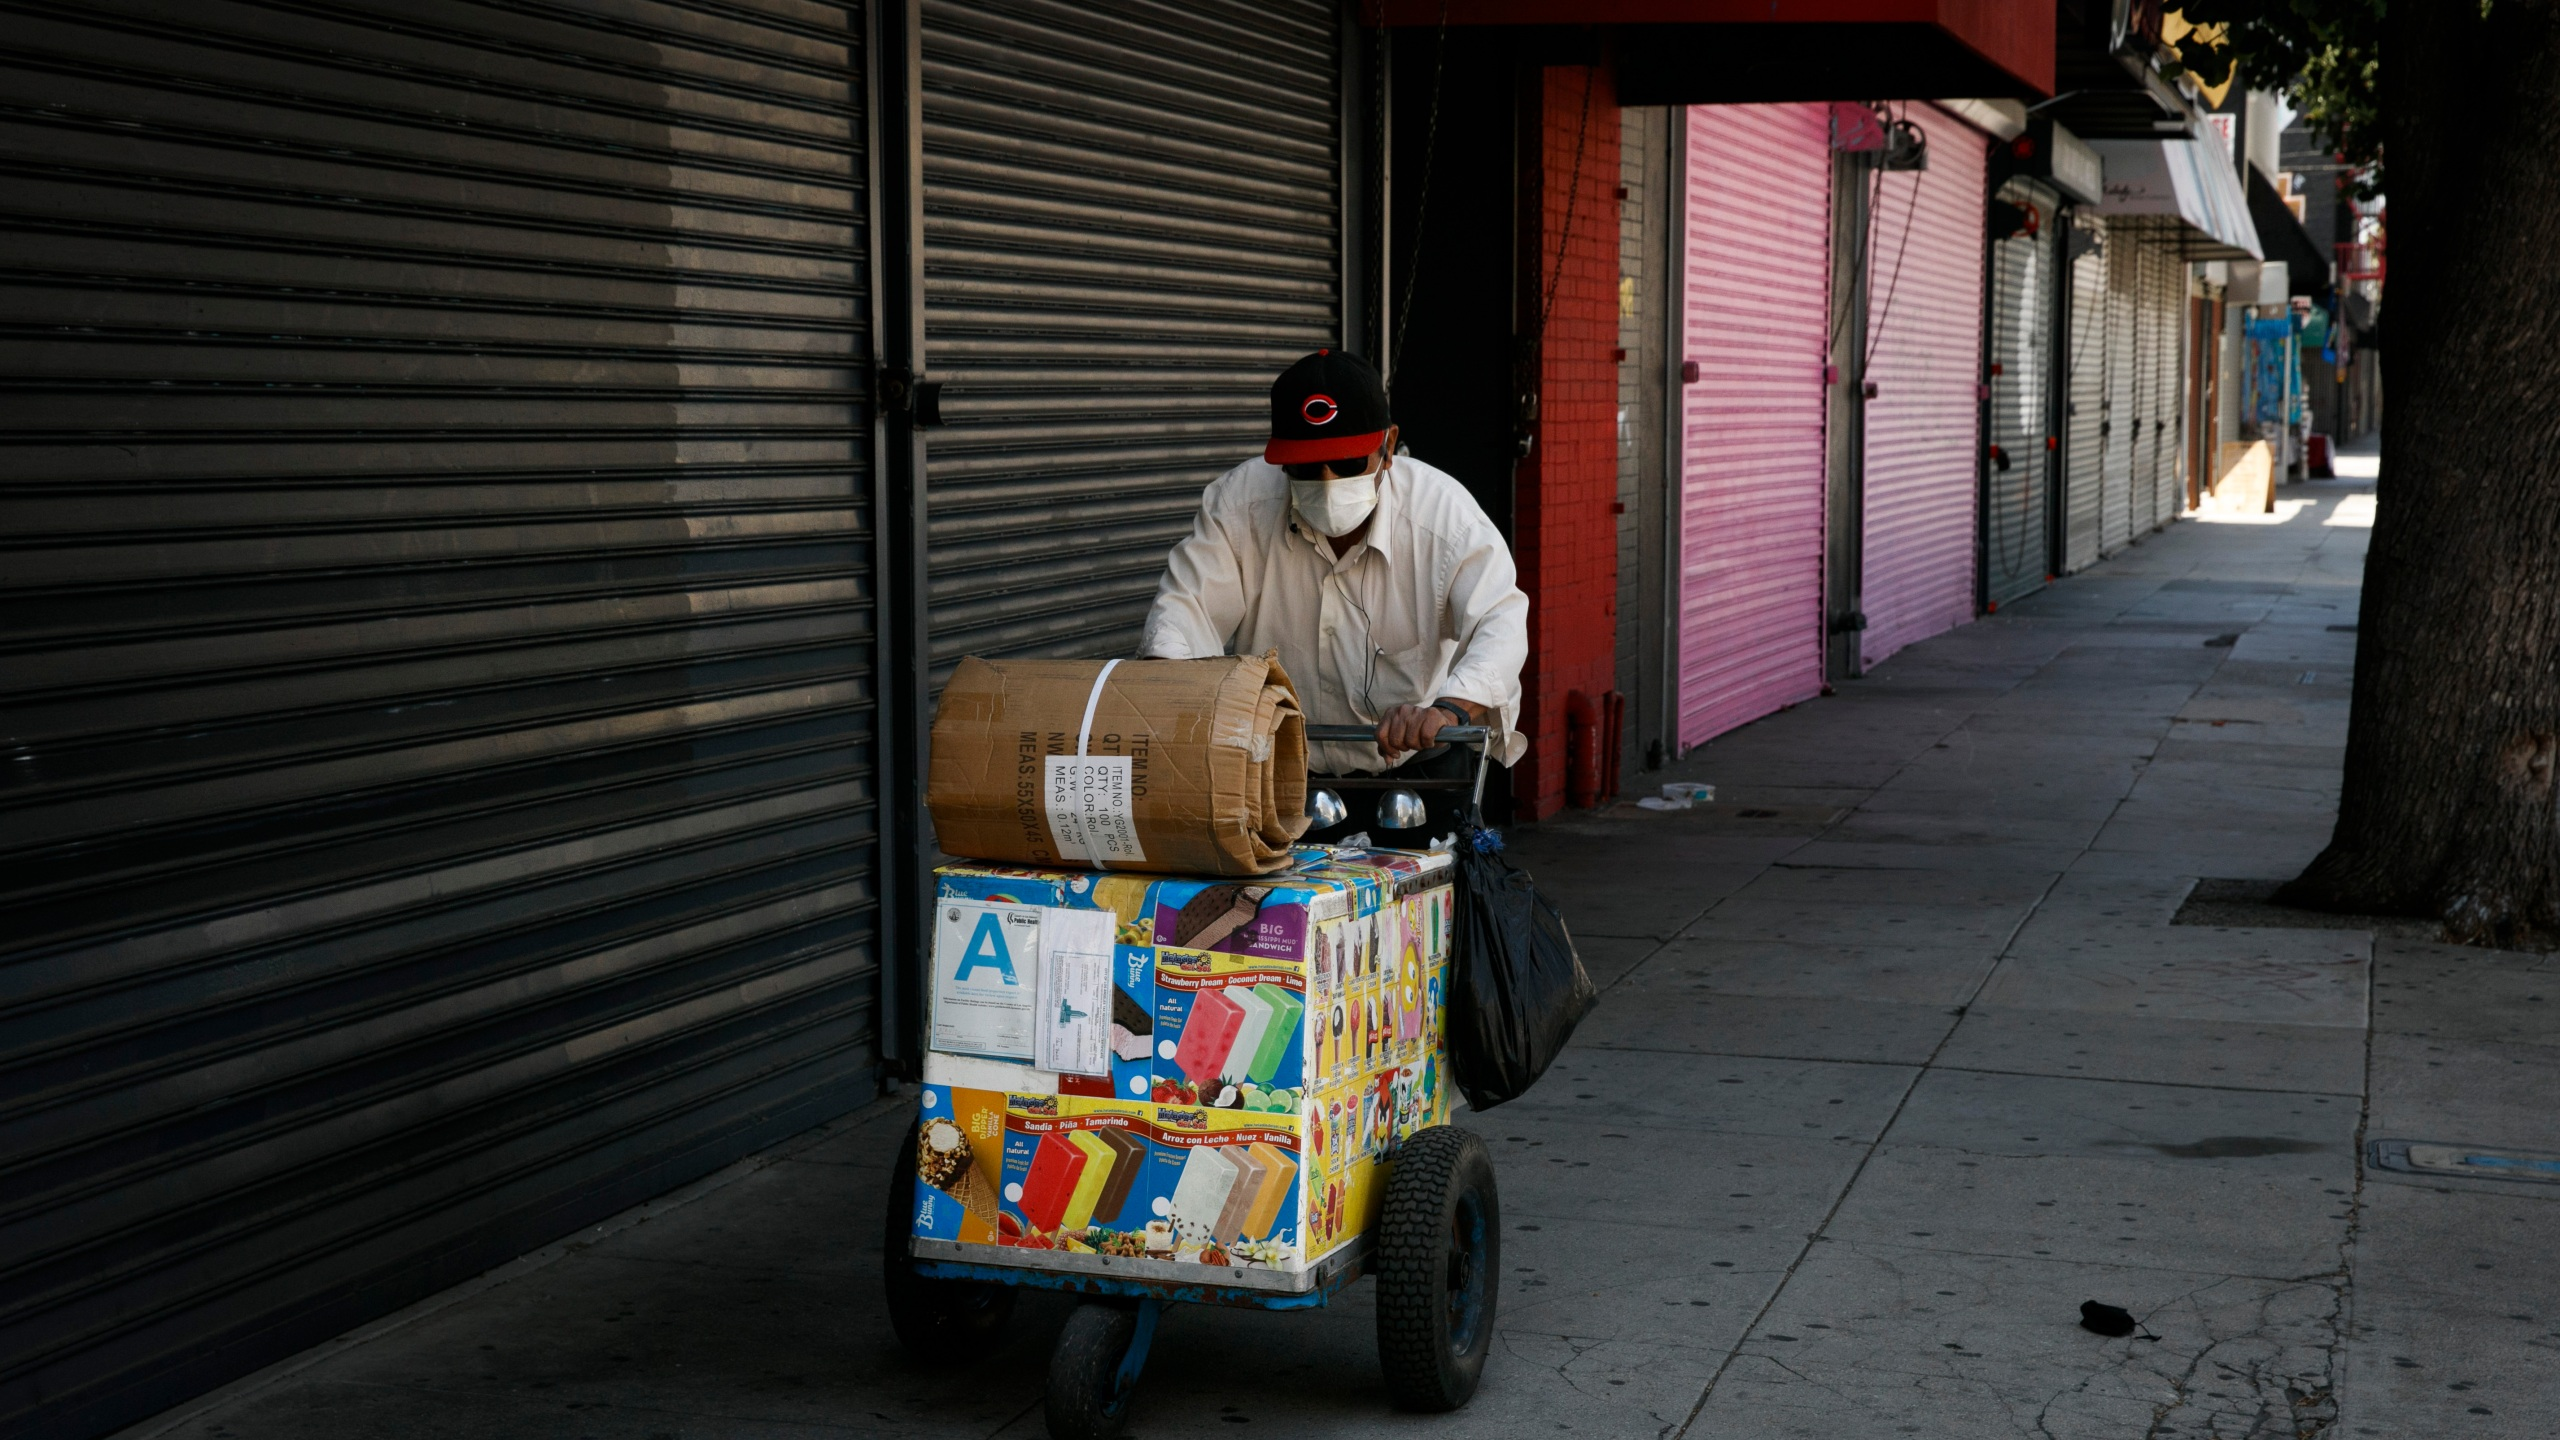 An ice cream vendor pushes his cart past shuttered stores during the coronavirus pandemic in Los Angeles on July 17, 2020. (AP Photo/Jae C. Hong)